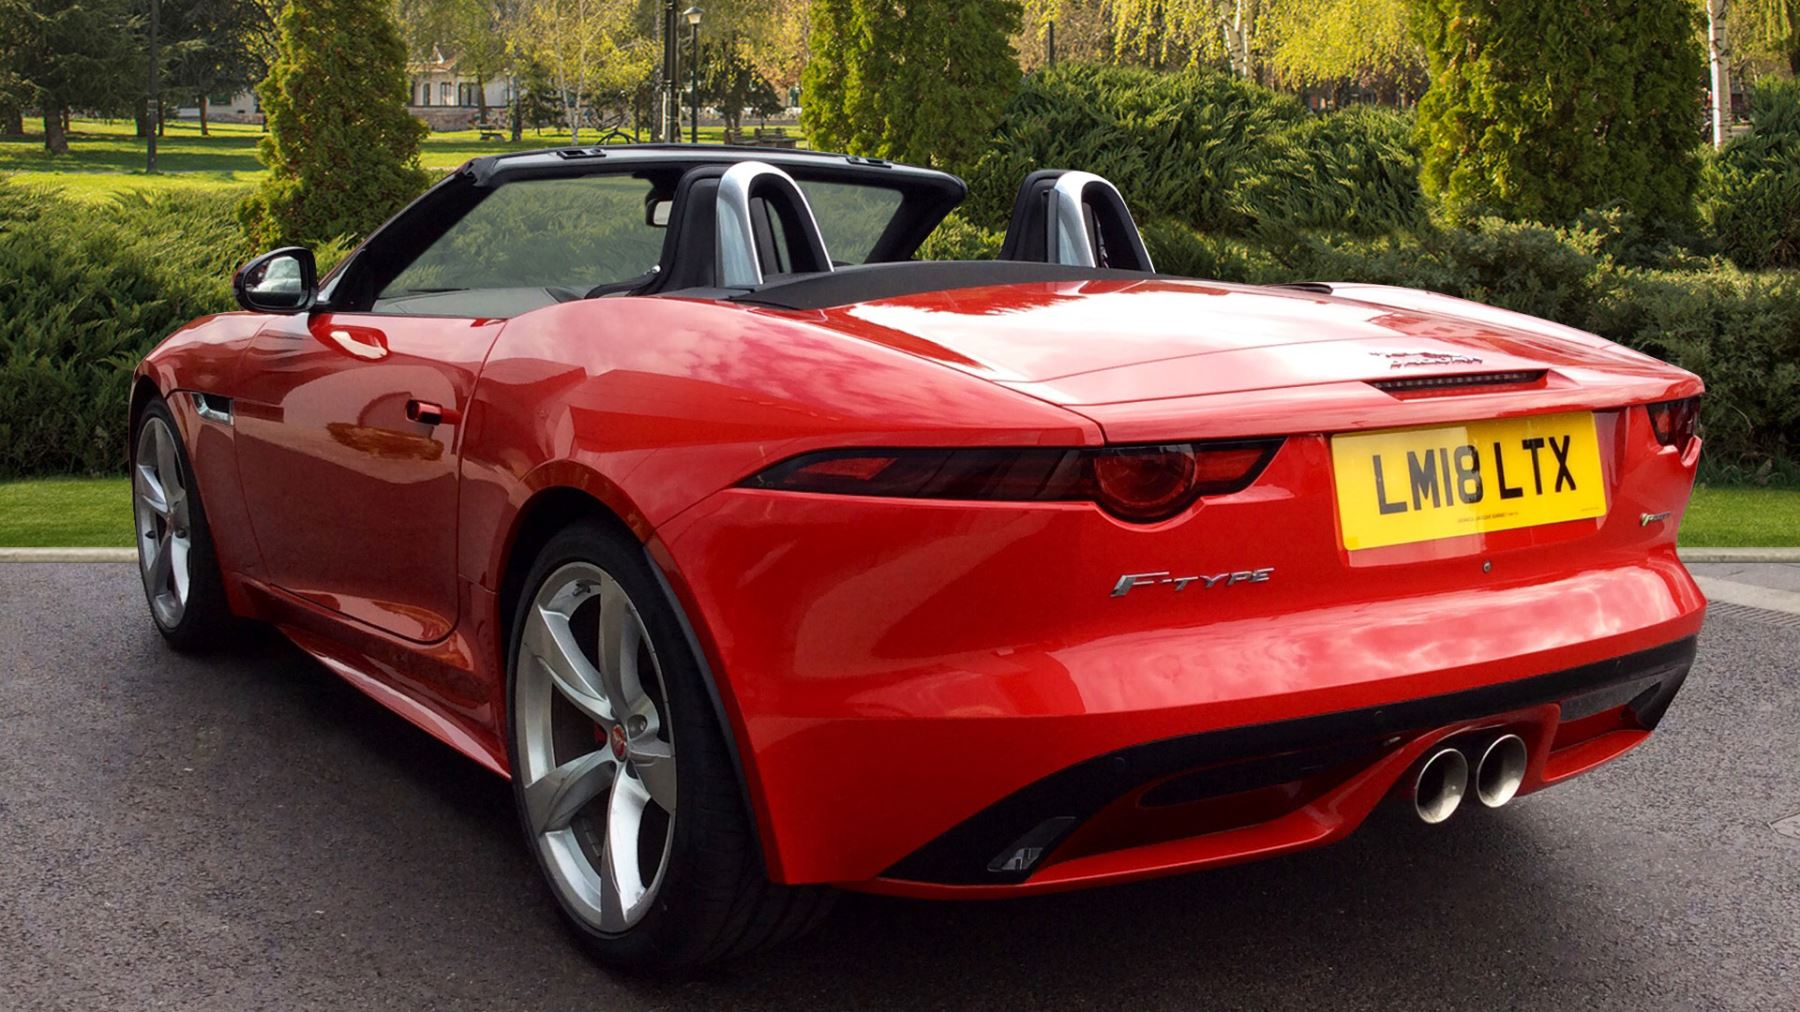 Jaguar F-TYPE 3.0 [380] Supercharged V6 R-Dynamic 2dr image 2